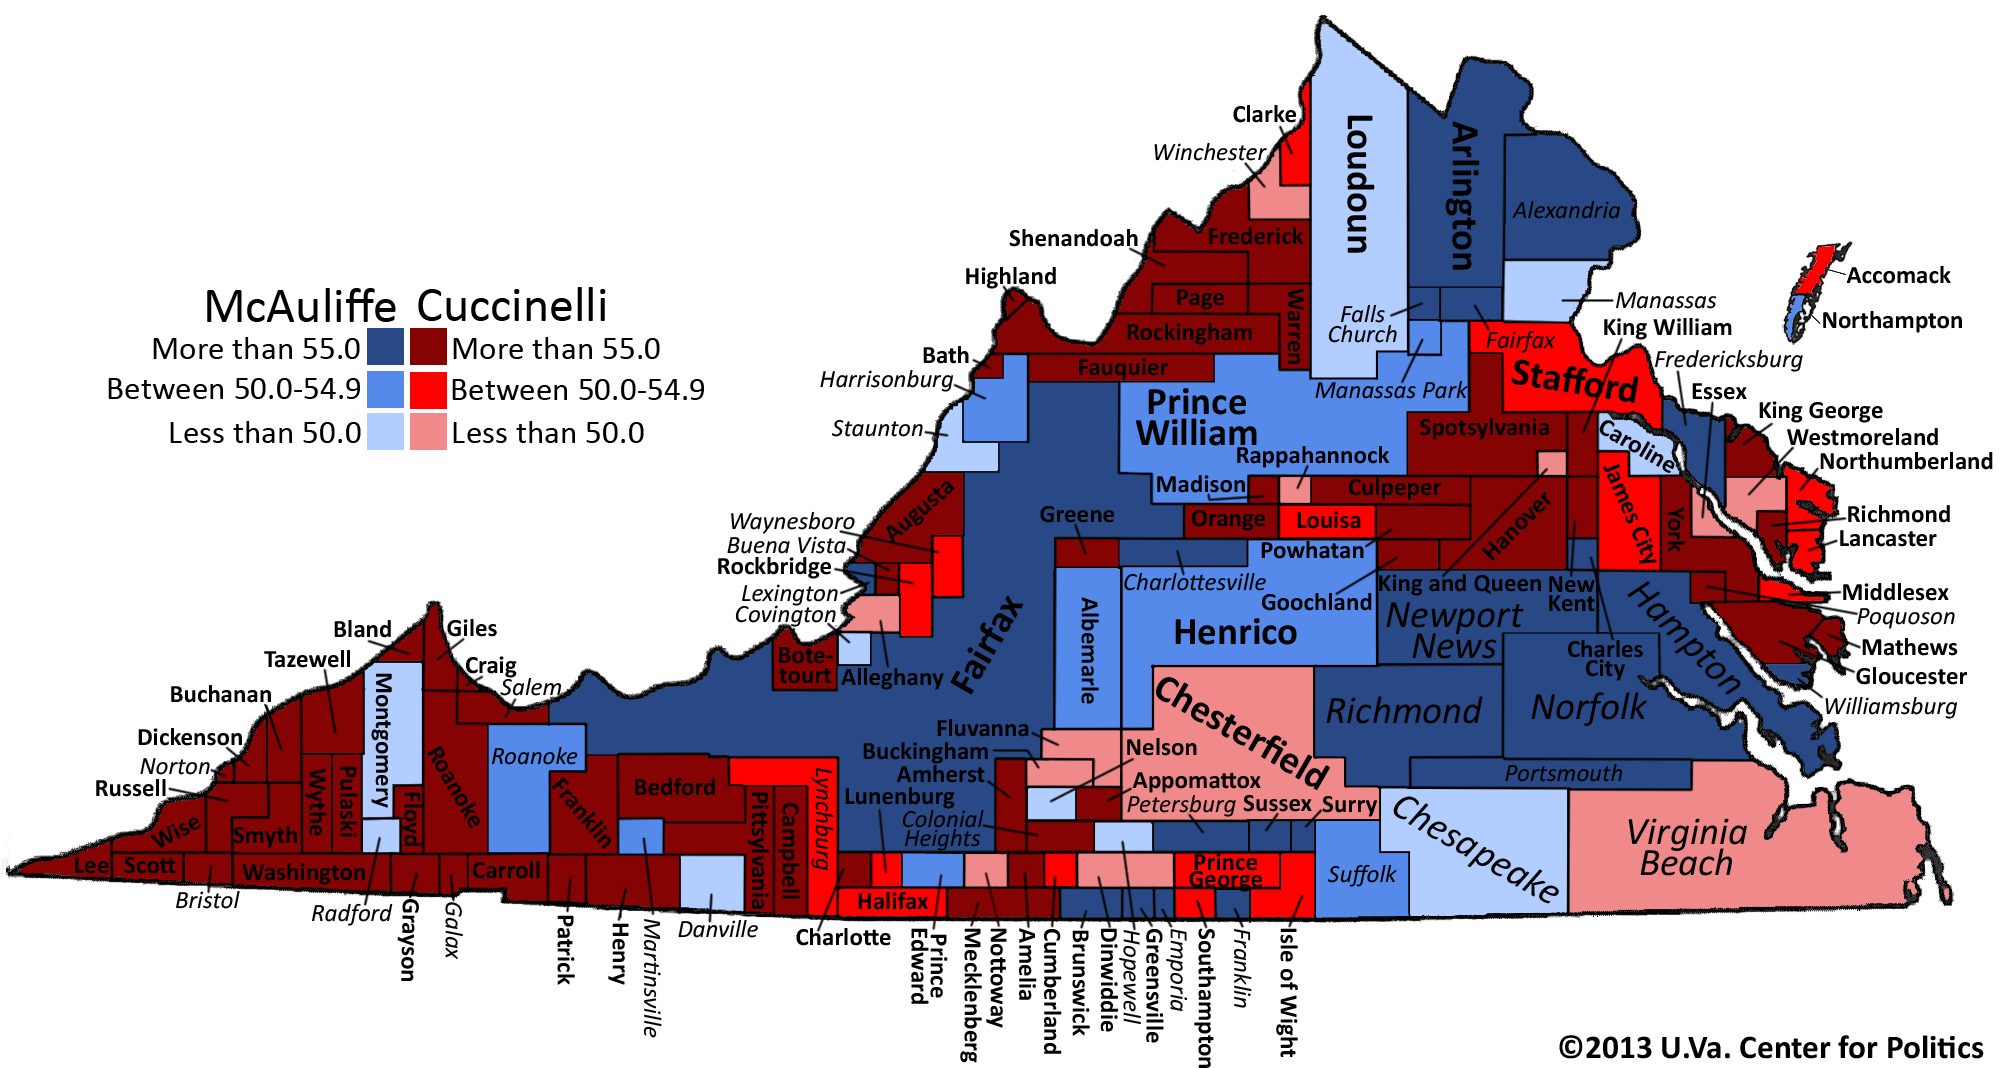 Dont Be Fooled By County Maps Cartograms Accurately Show - Us county population map cartogram